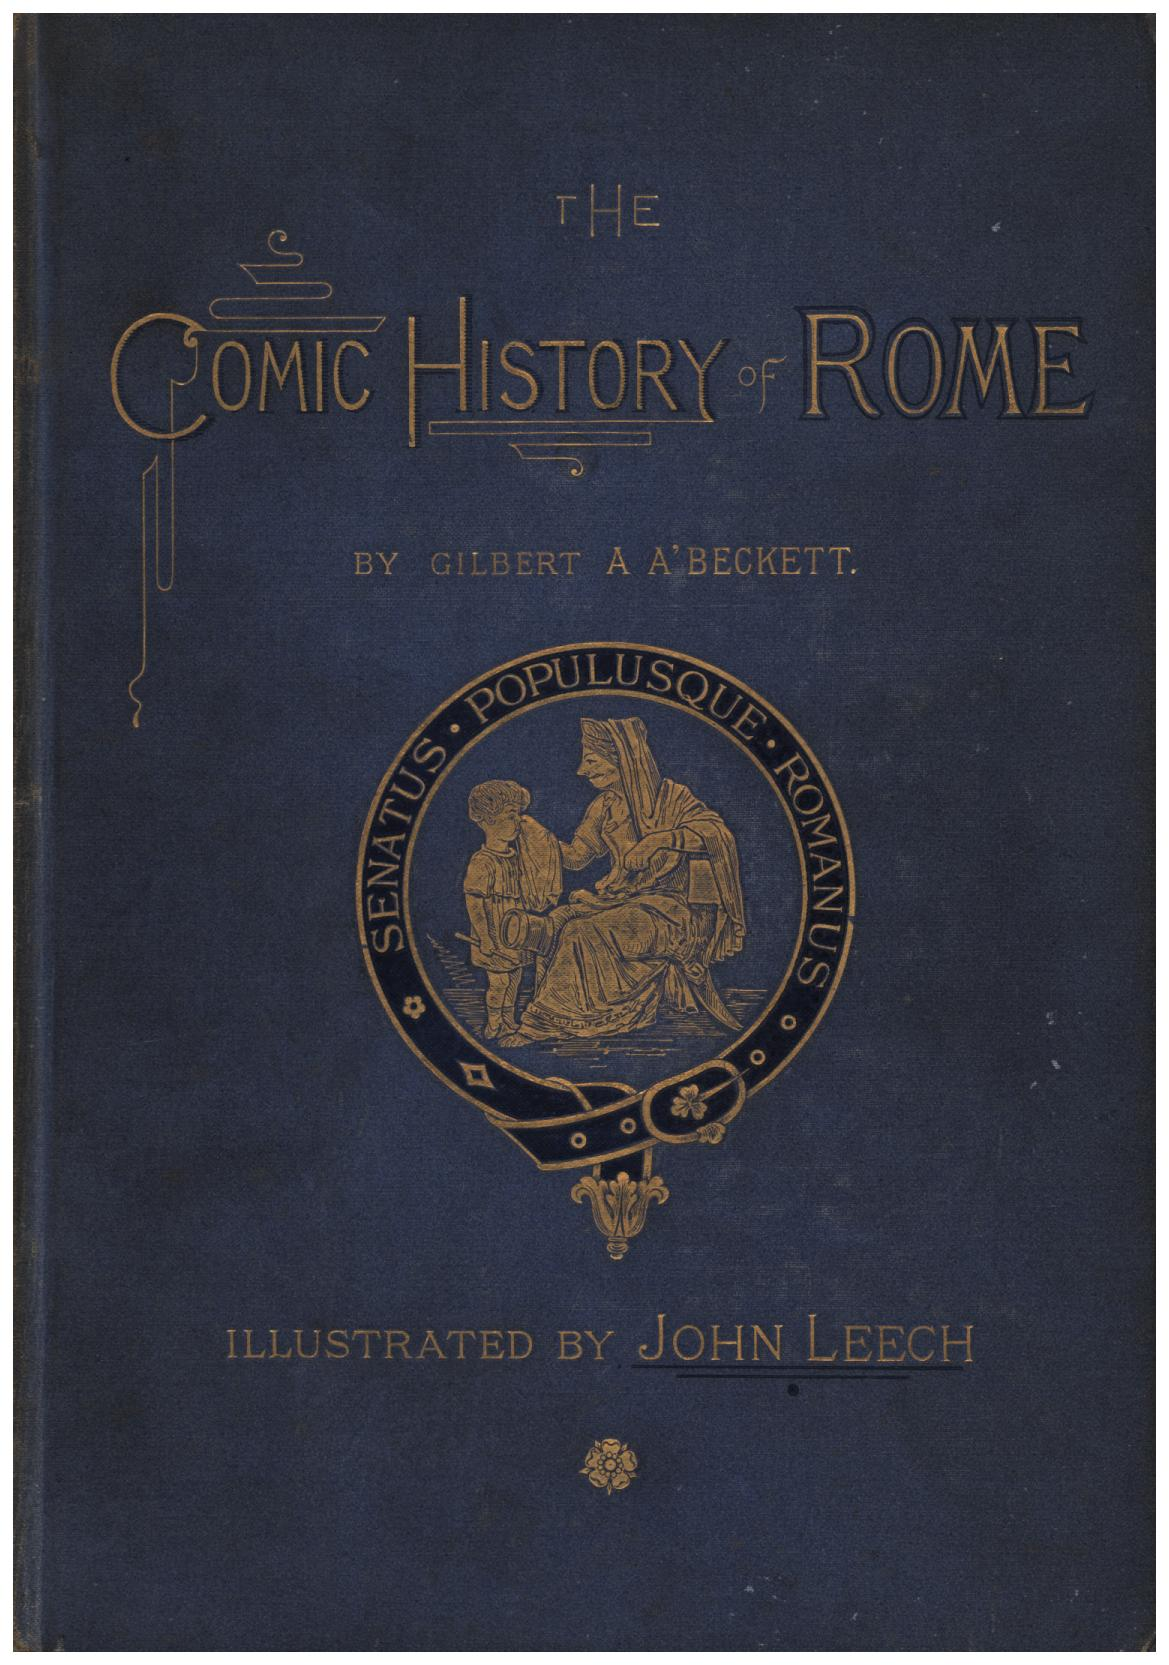 Image for The Comic History of Rome and England in 3 volumes